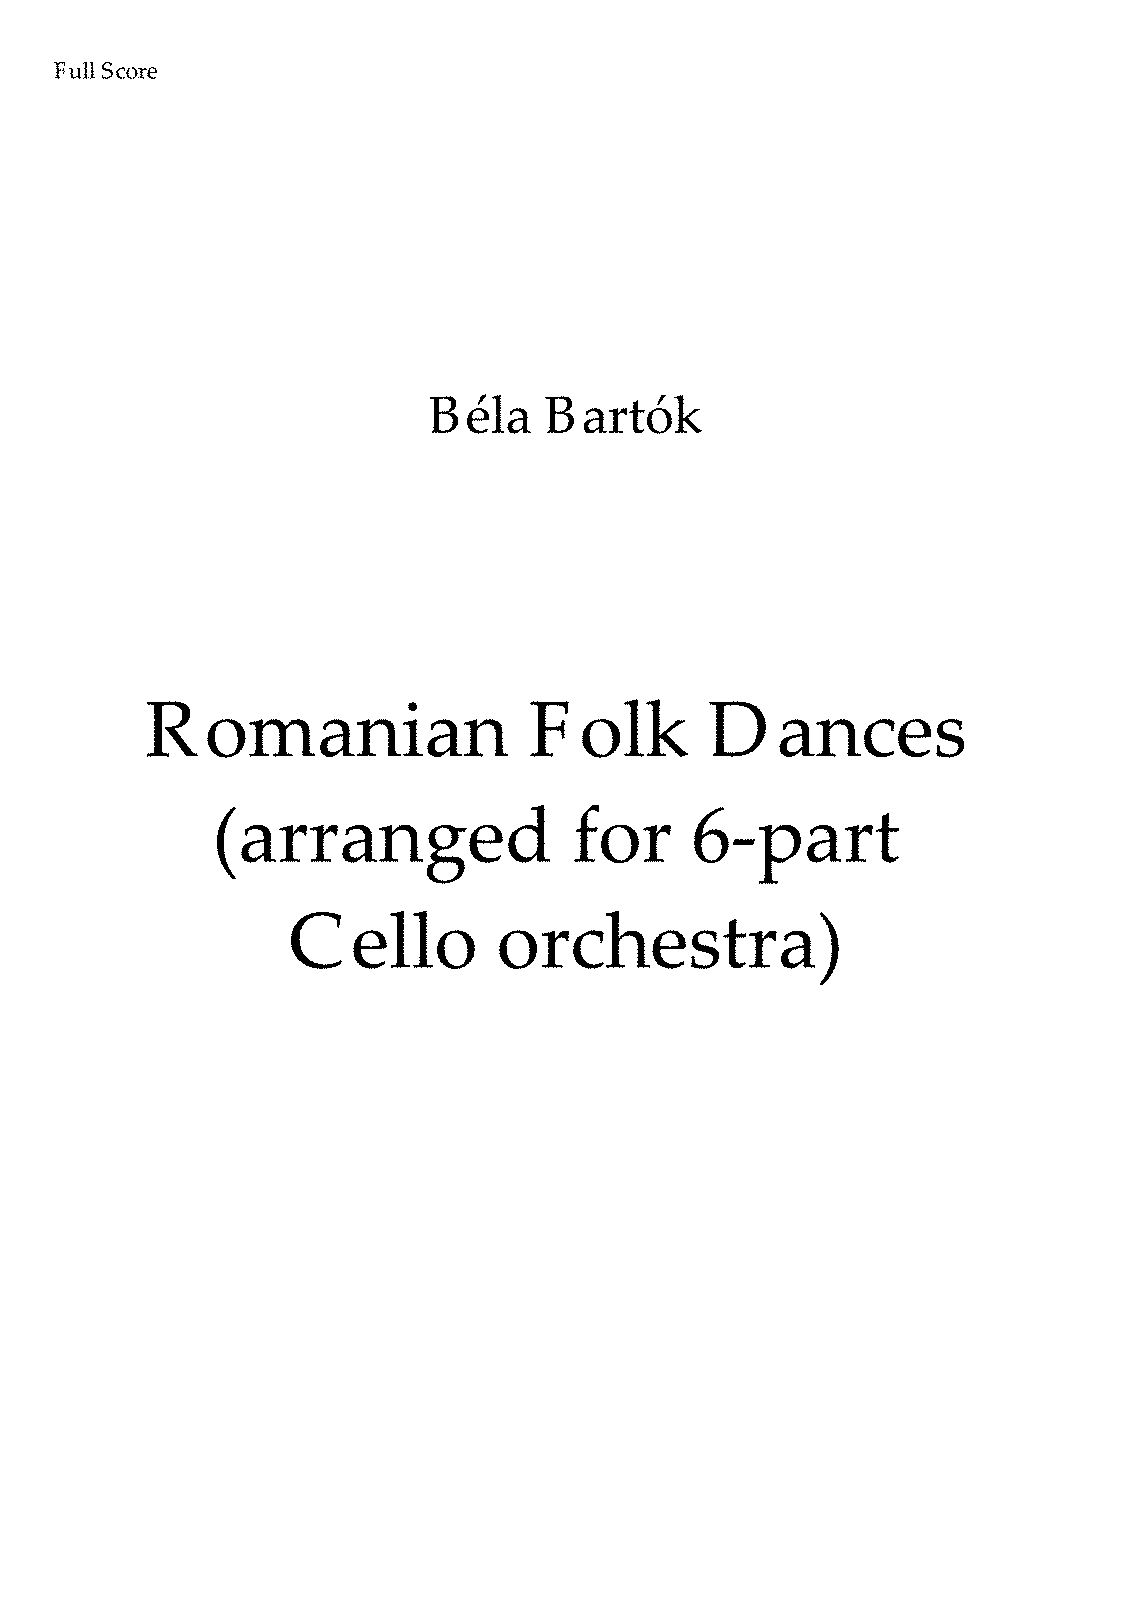 PMLP03387-Bartok RomanianFolkDances - Full Score.pdf